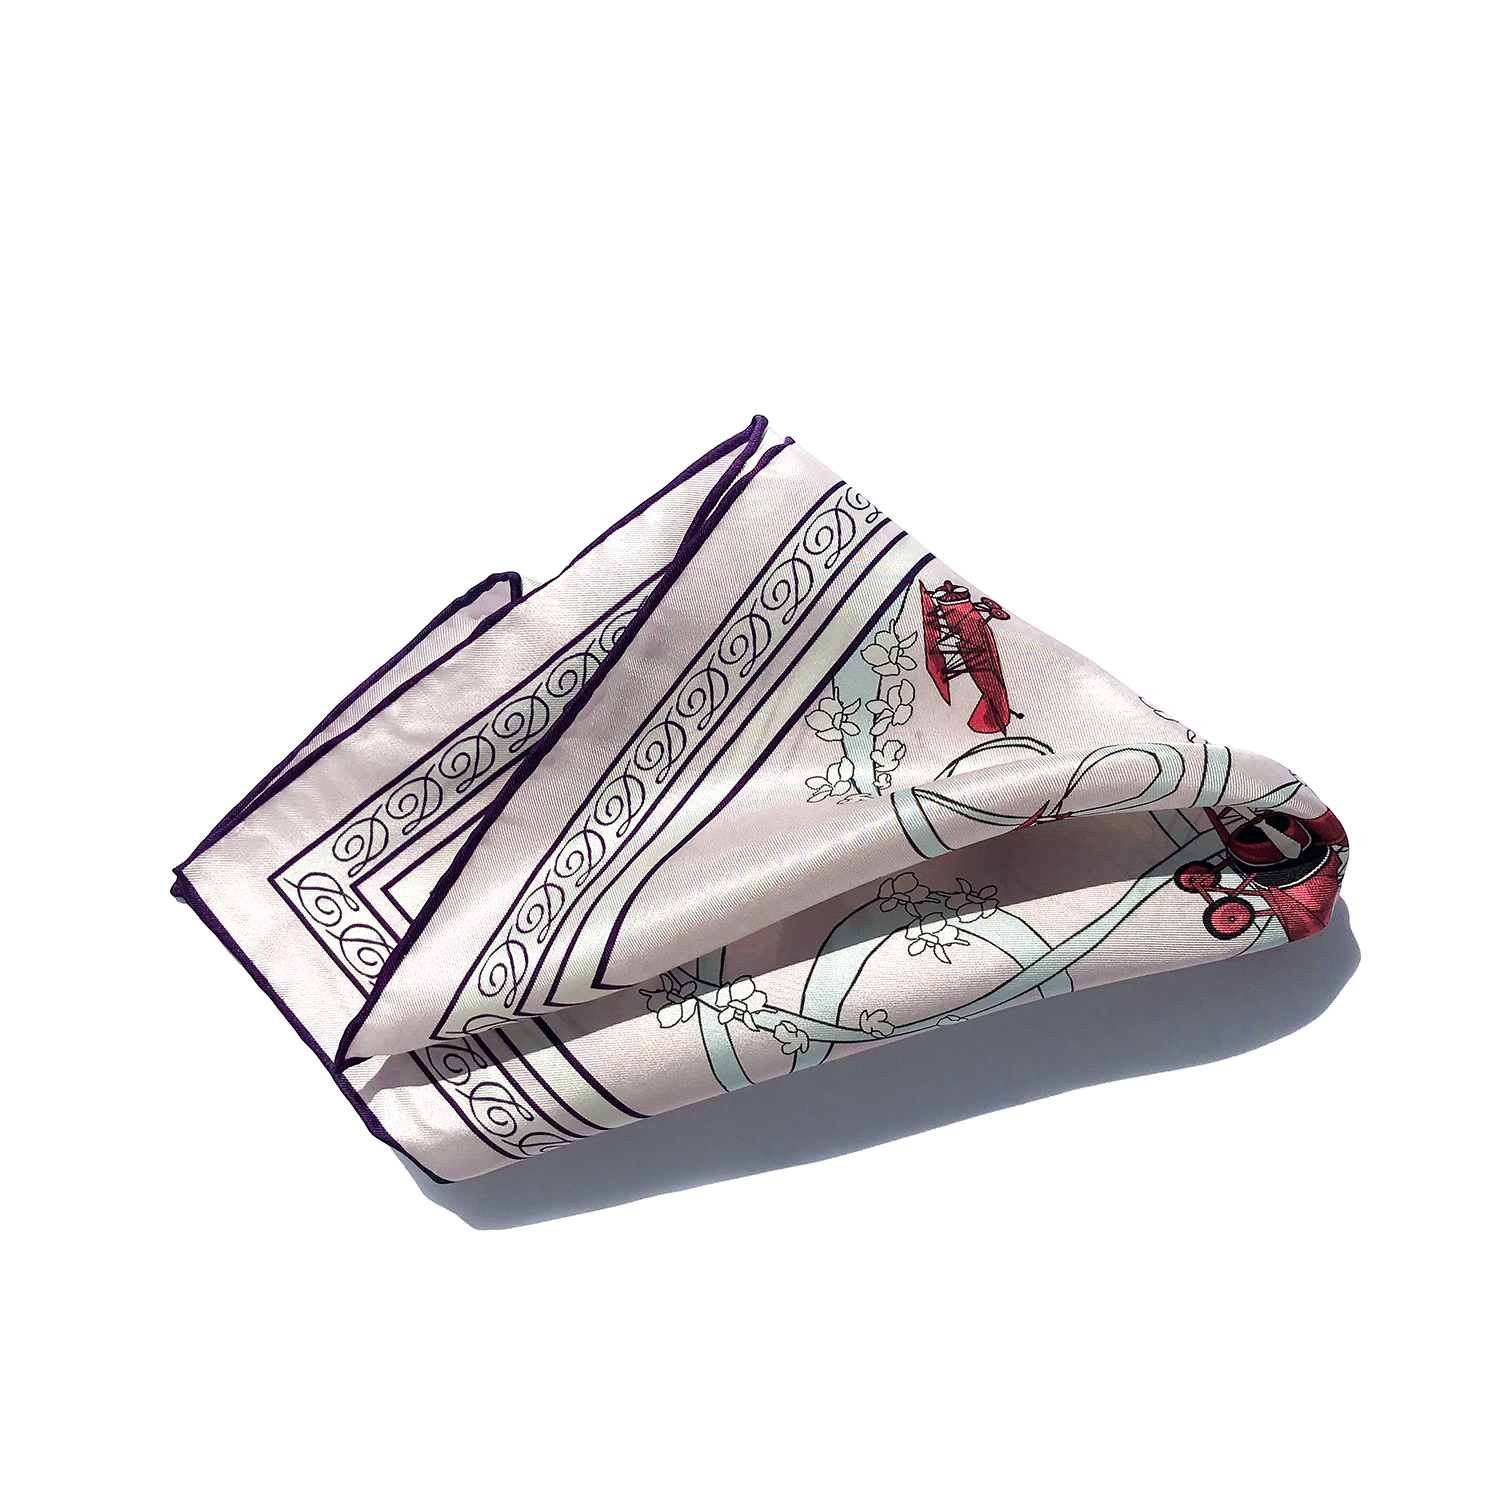 Acrobatic Biplane pocket square